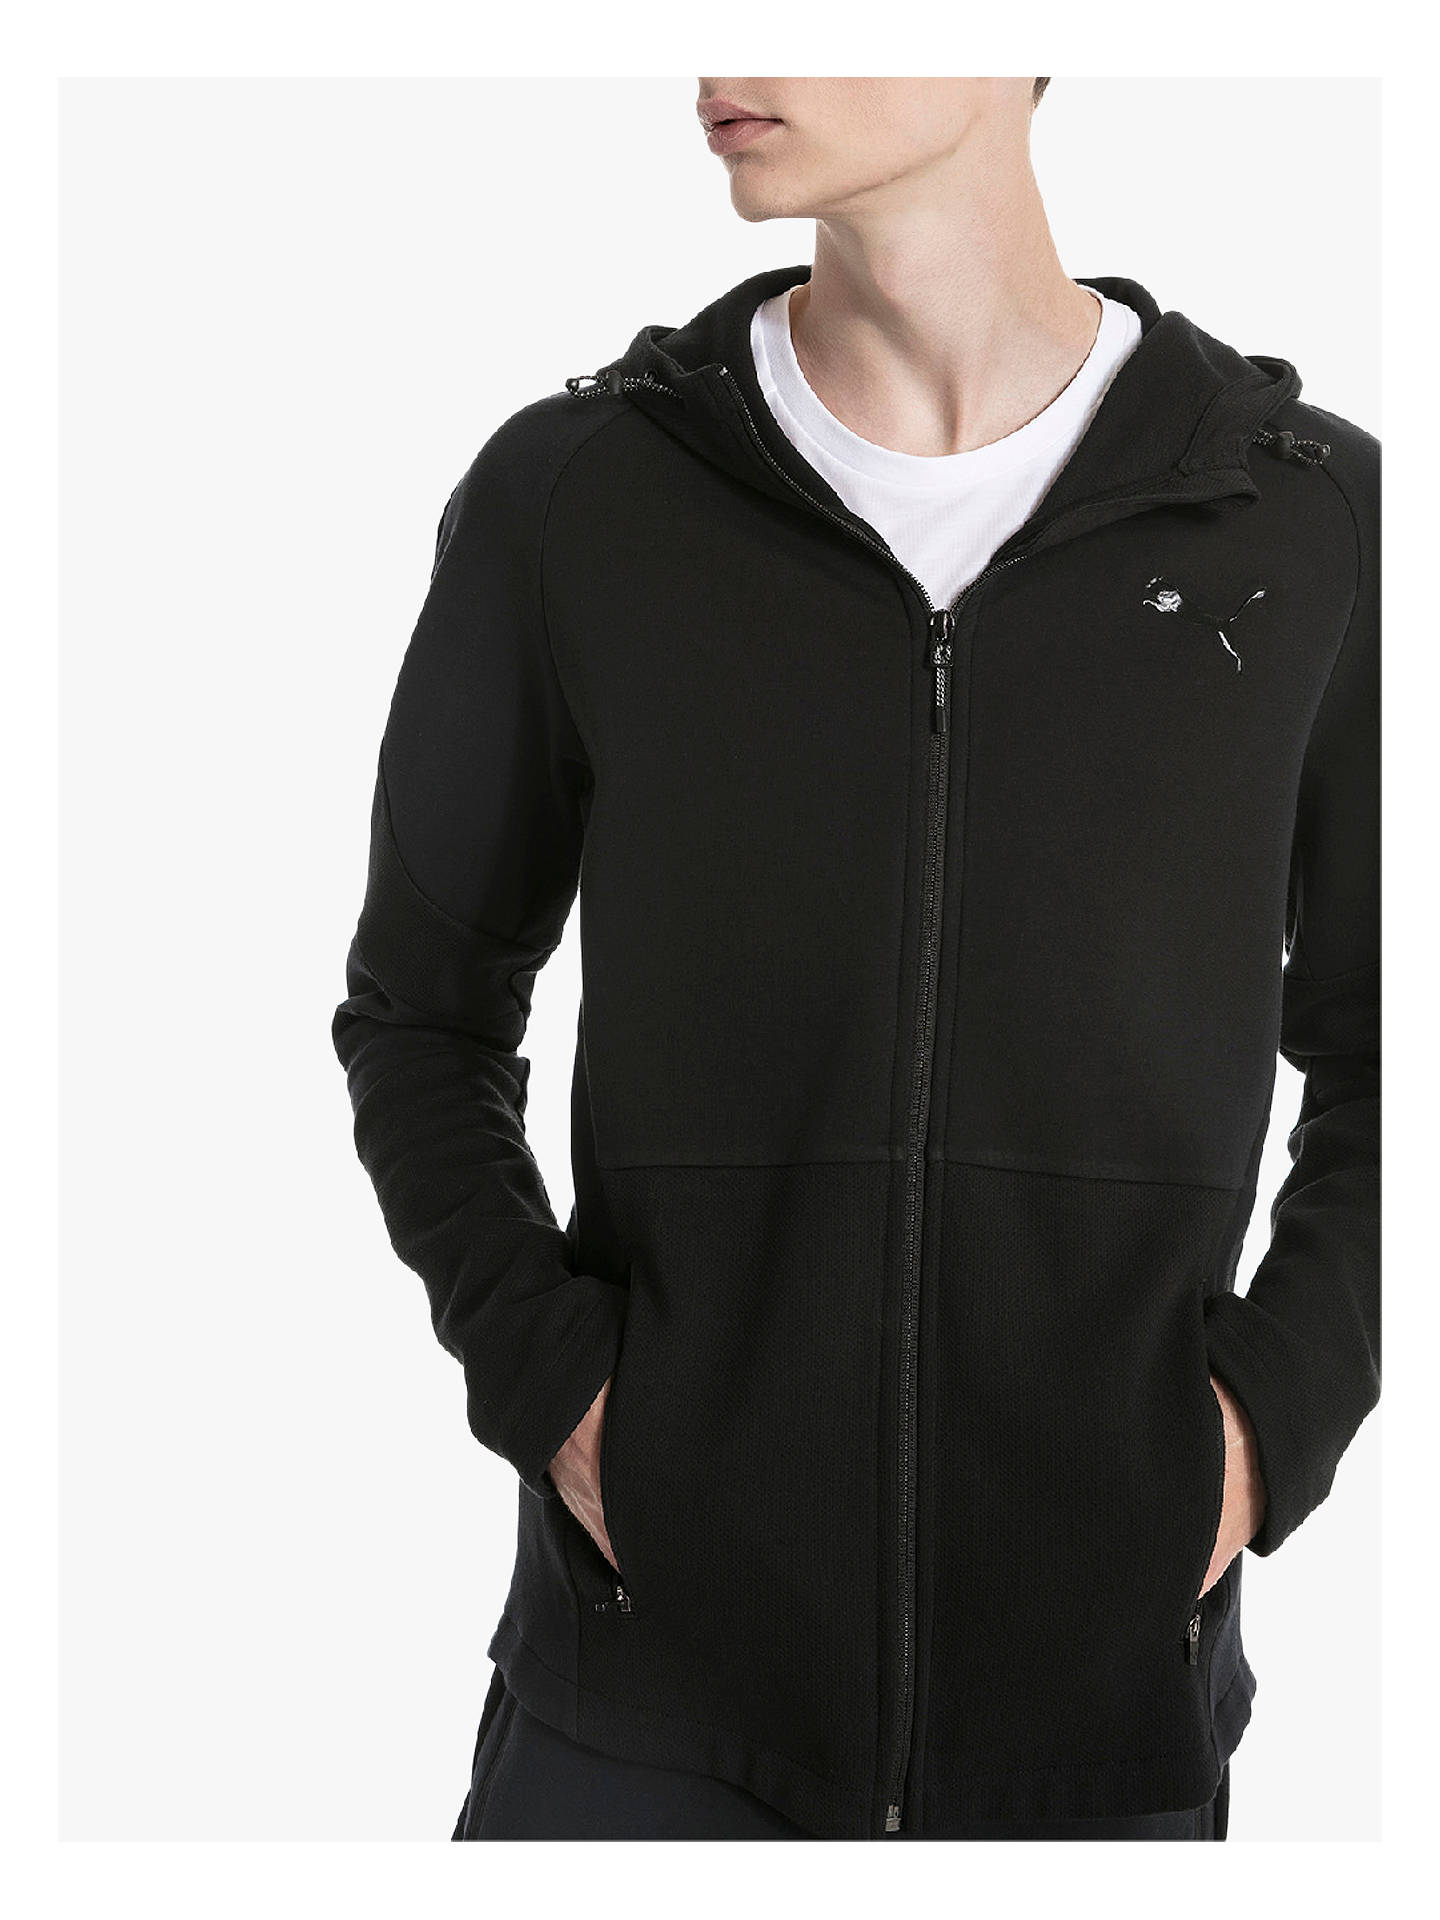 16c710037e30 PUMA Evostripe Hooded Jacket at John Lewis   Partners